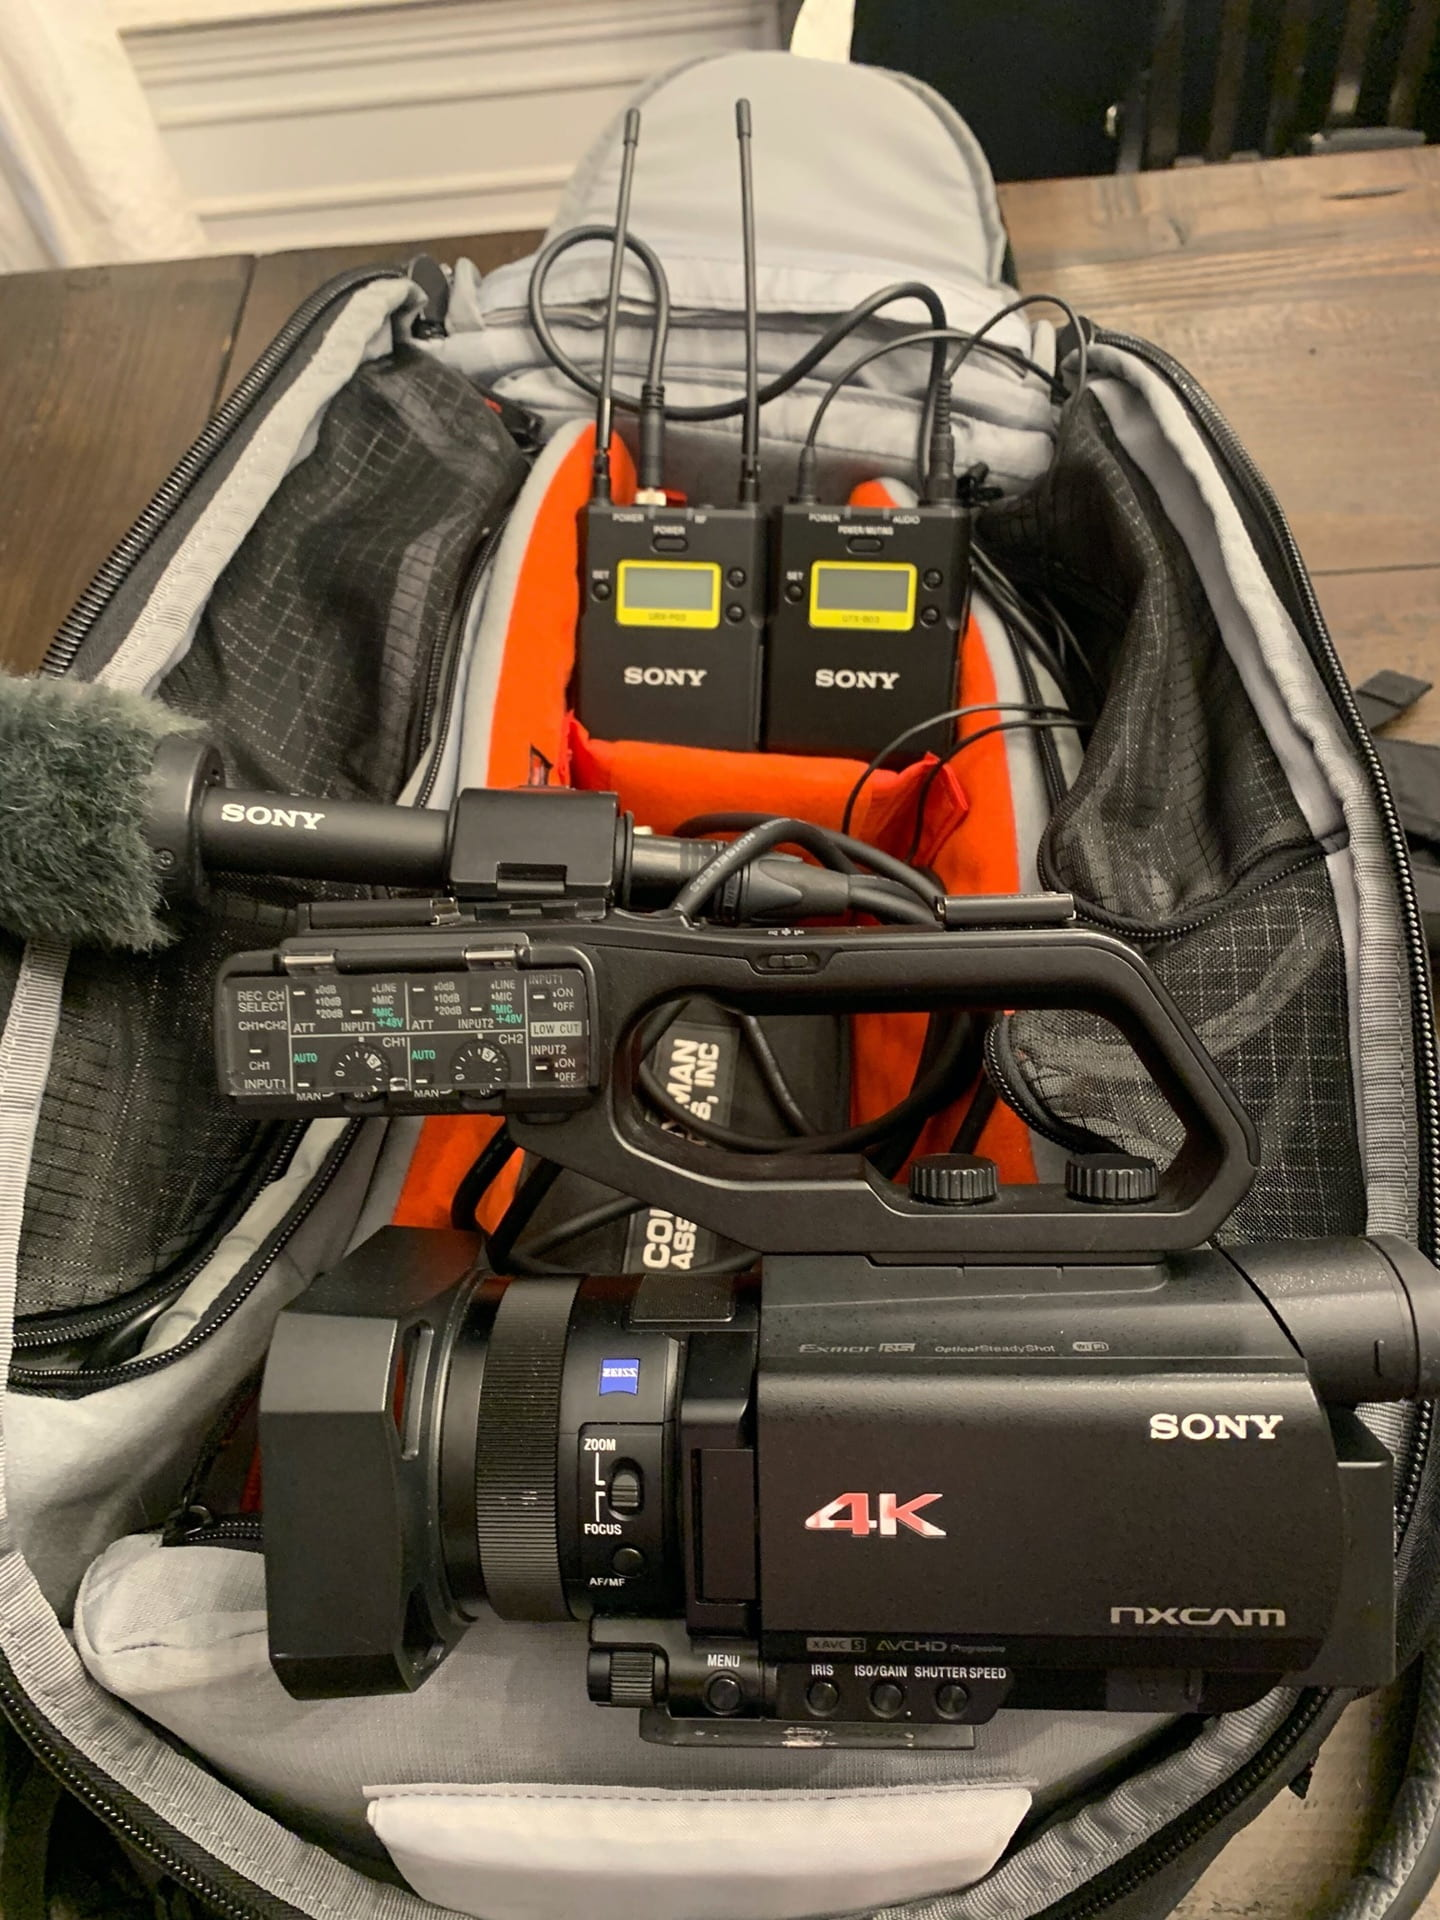 All the Equipment inside a Backpack